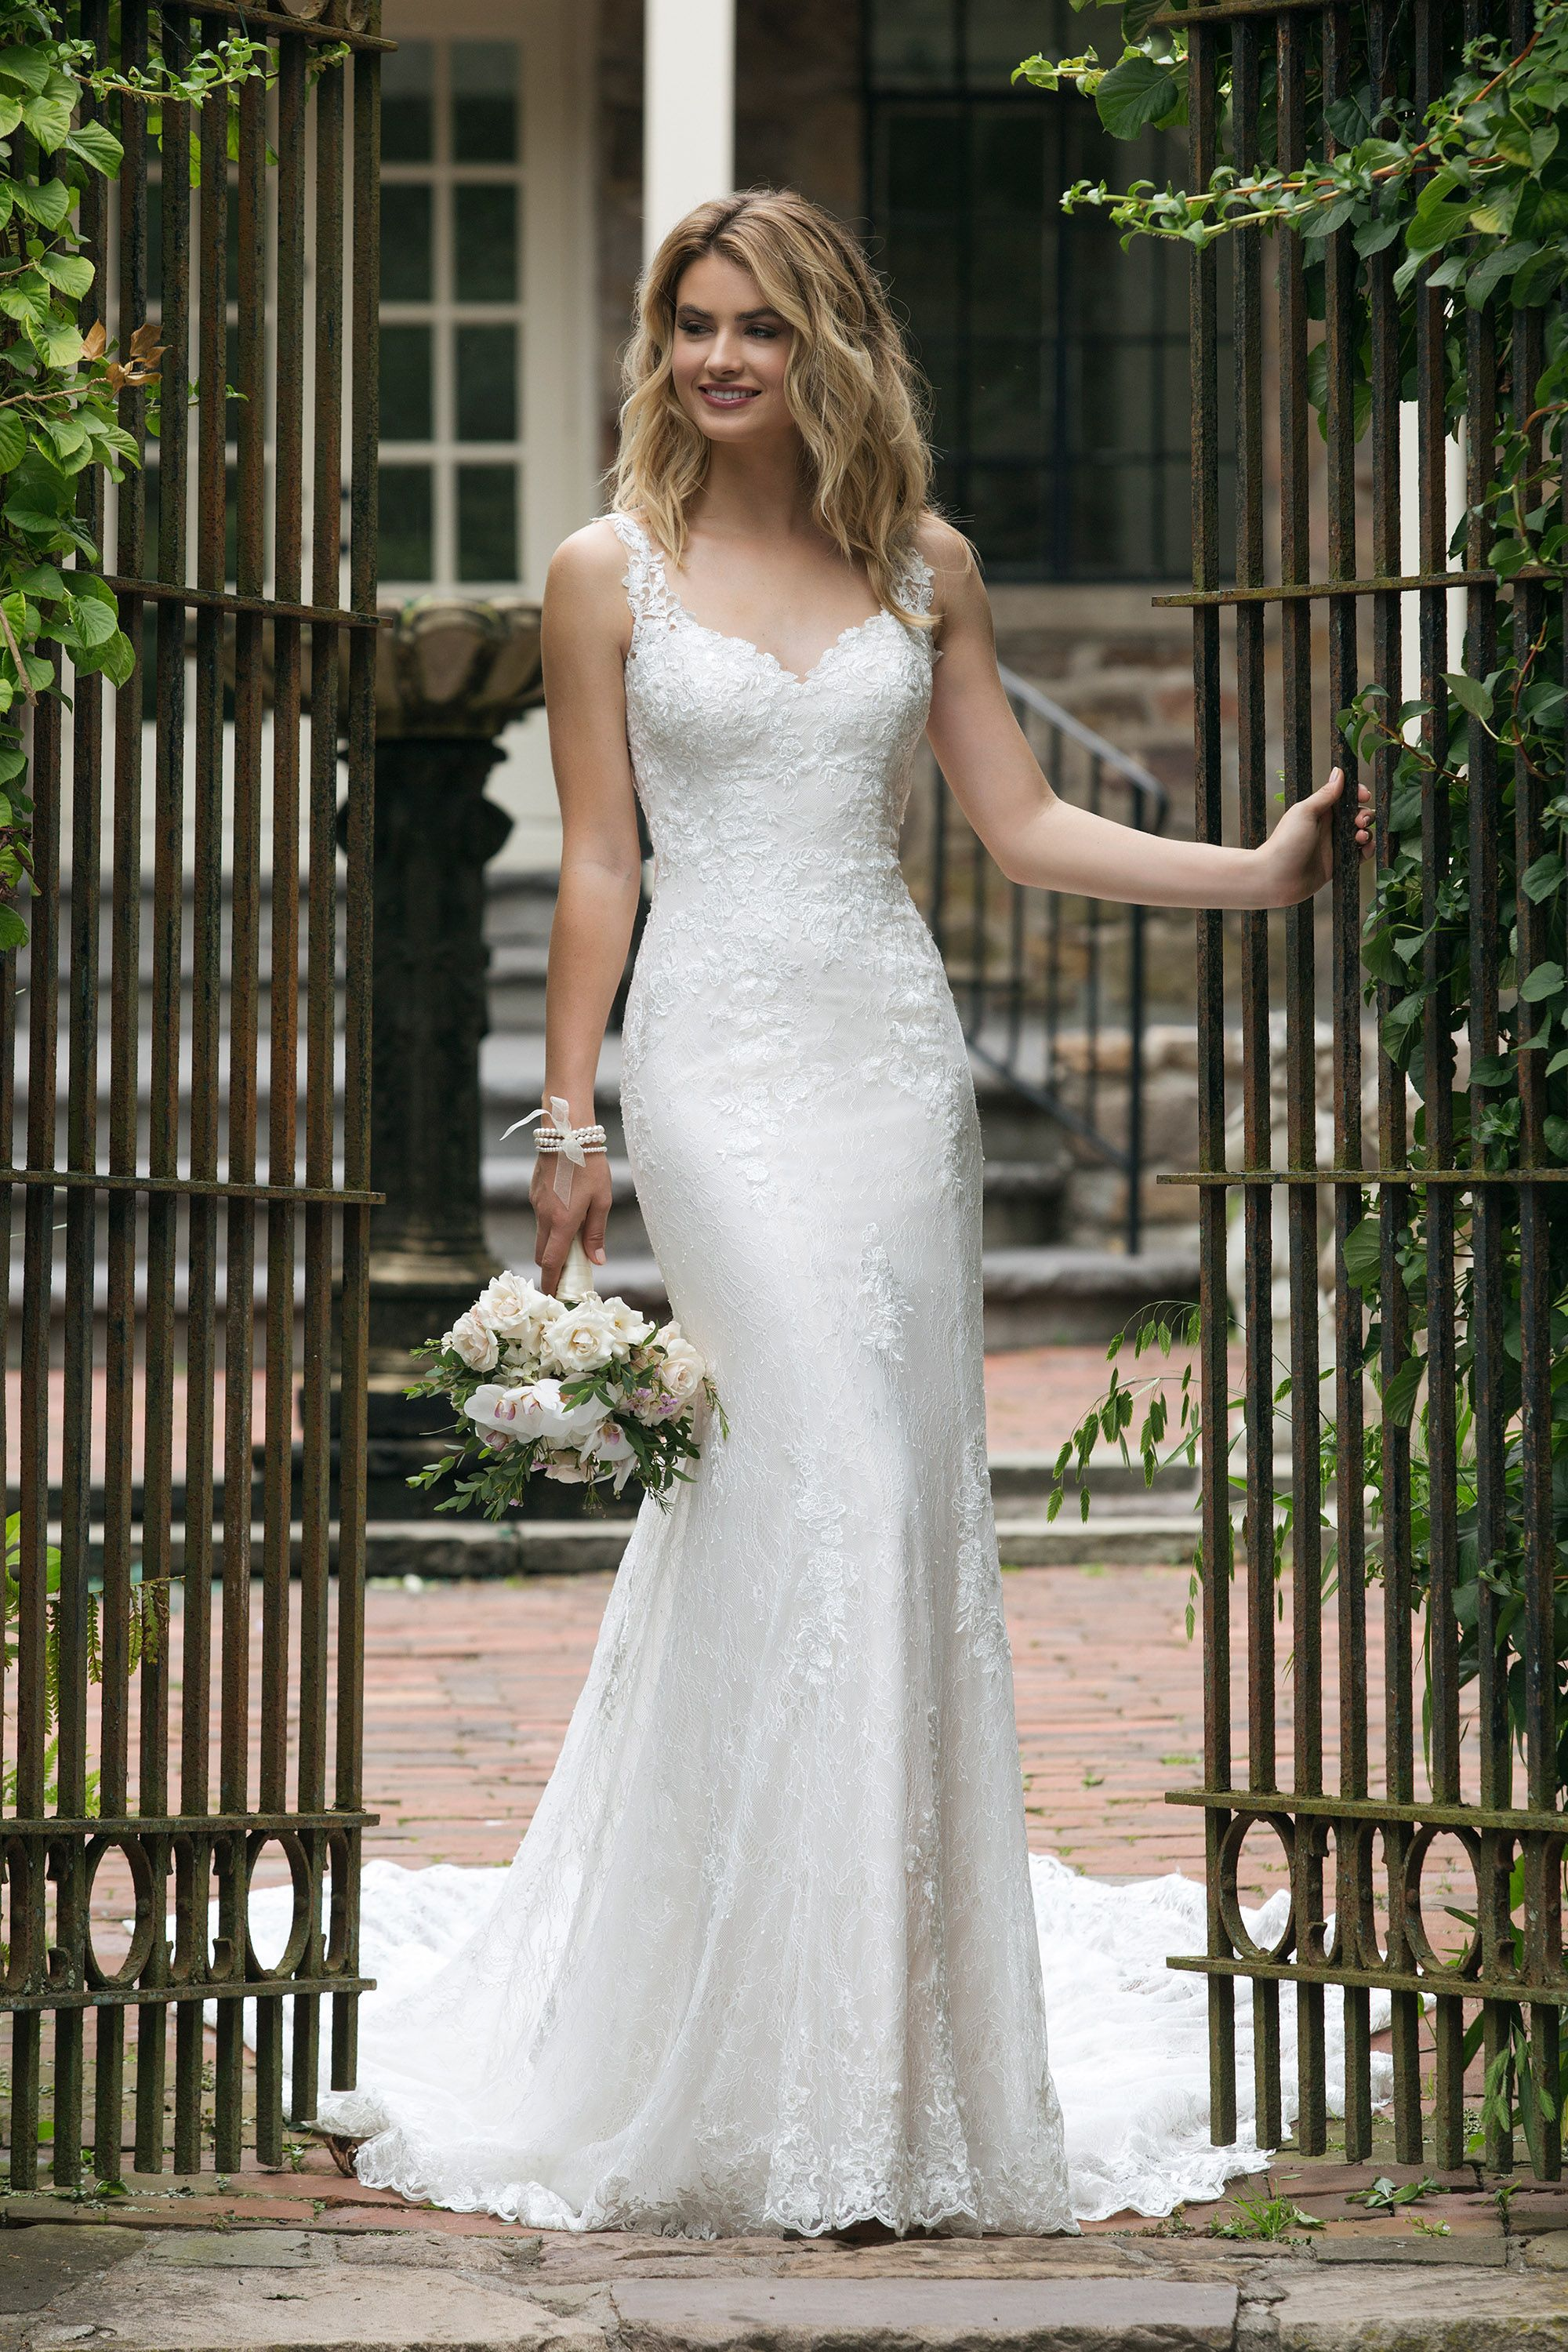 Fantasy Bridal Contemporary And Modest Gowns For Utah Brides Salt Lake City County 131043